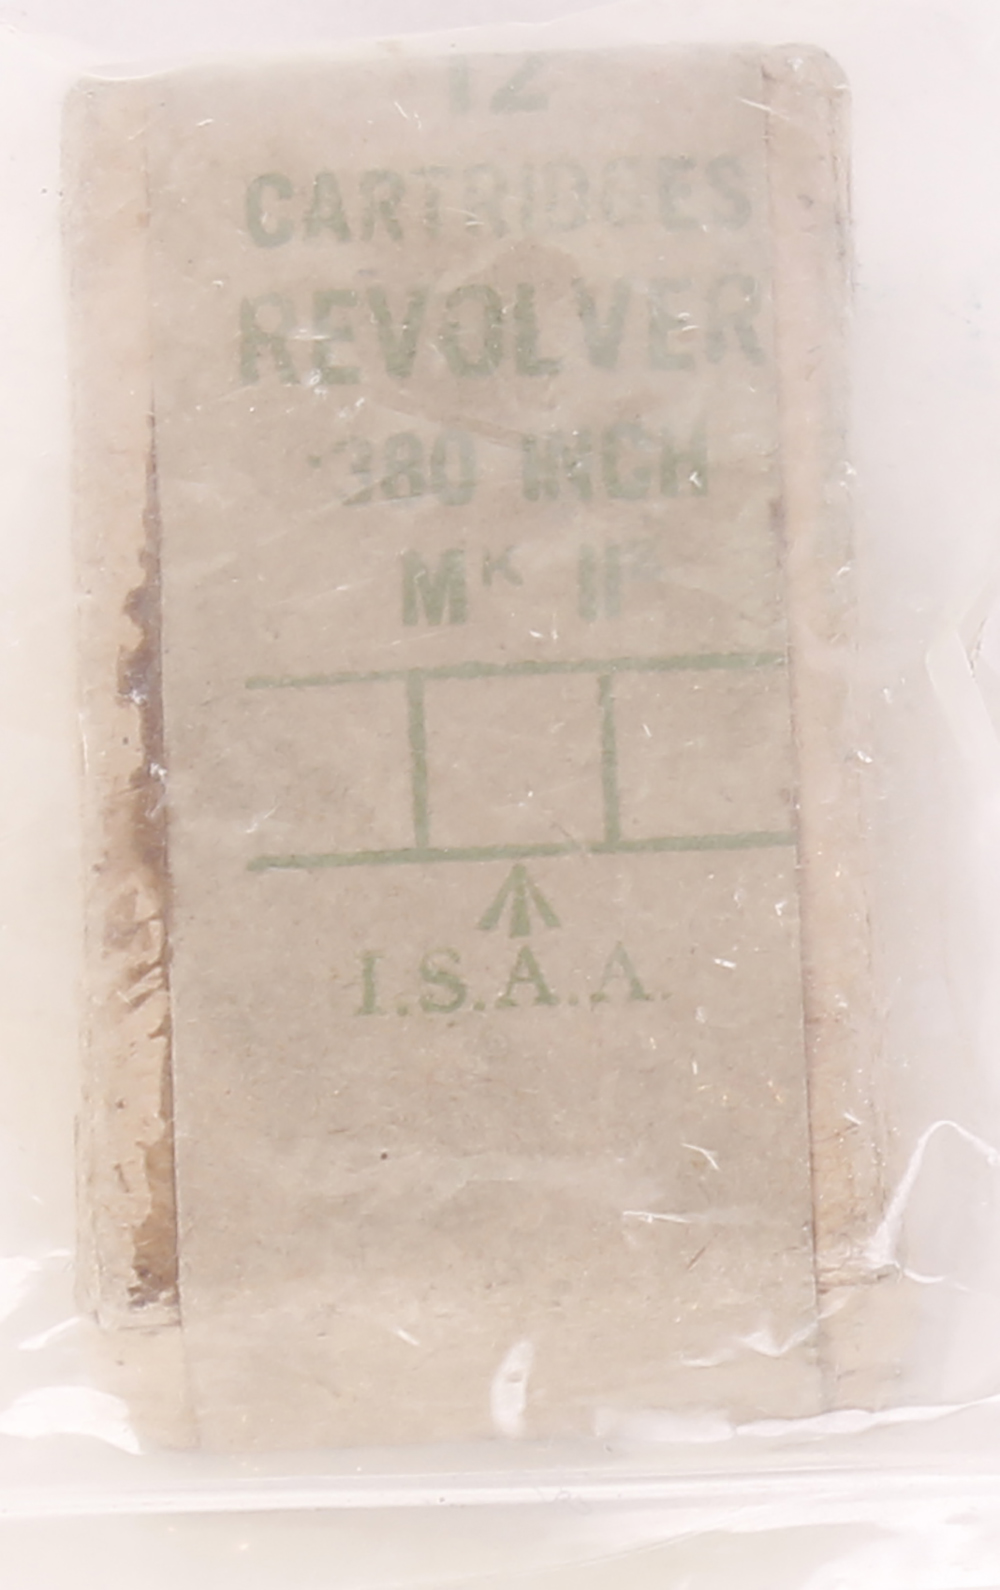 (S1) 12 x .380 Revolver cartridges in packet [Purchasers please note: Section 1 licence required.